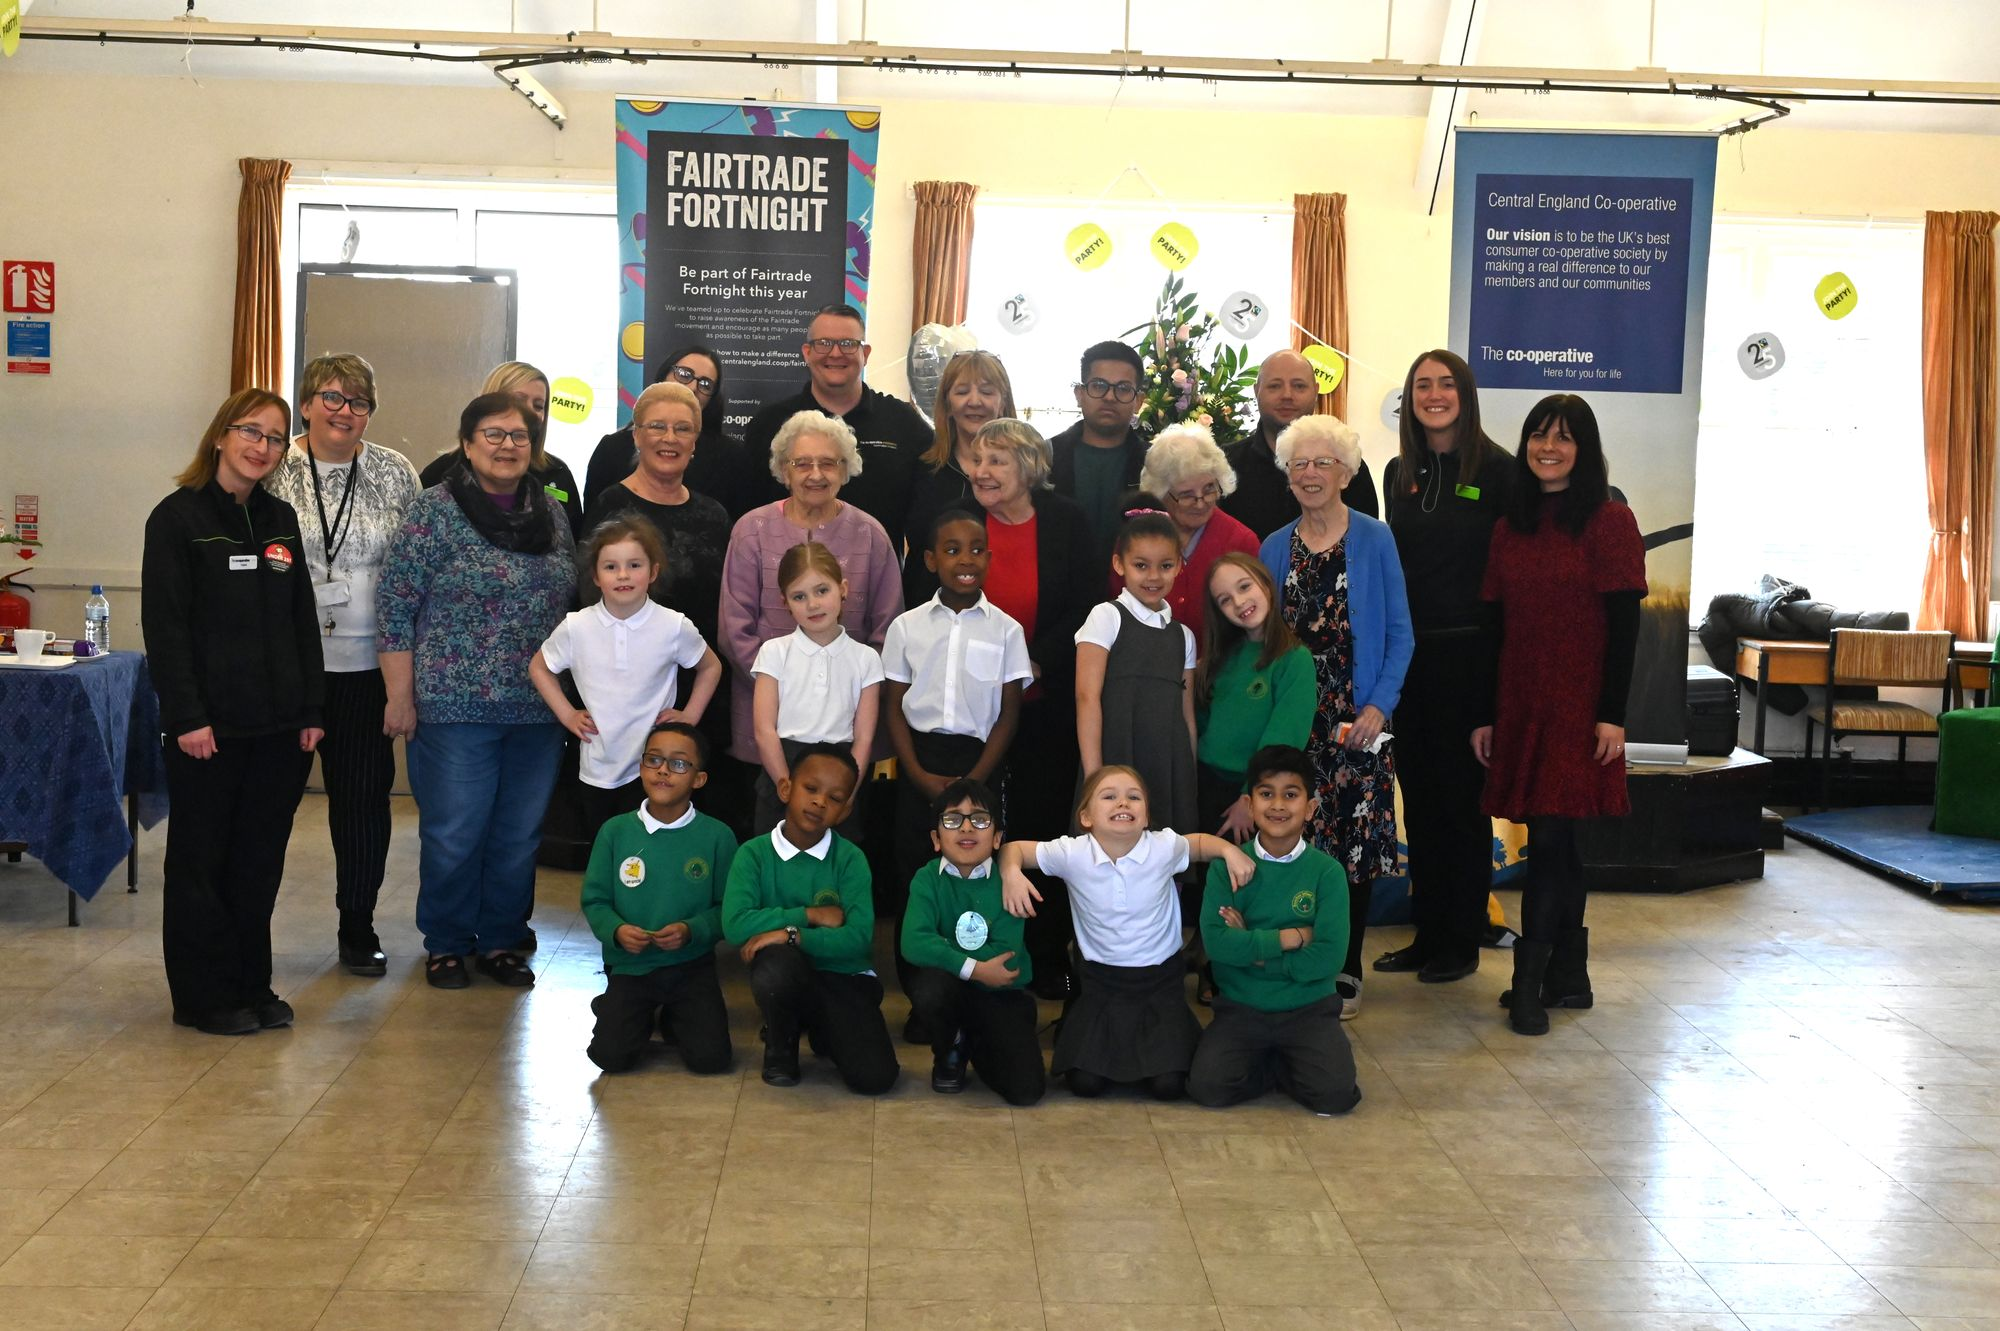 Two generations come together in Birmingham for special event to mark Fairtrade Fortnight